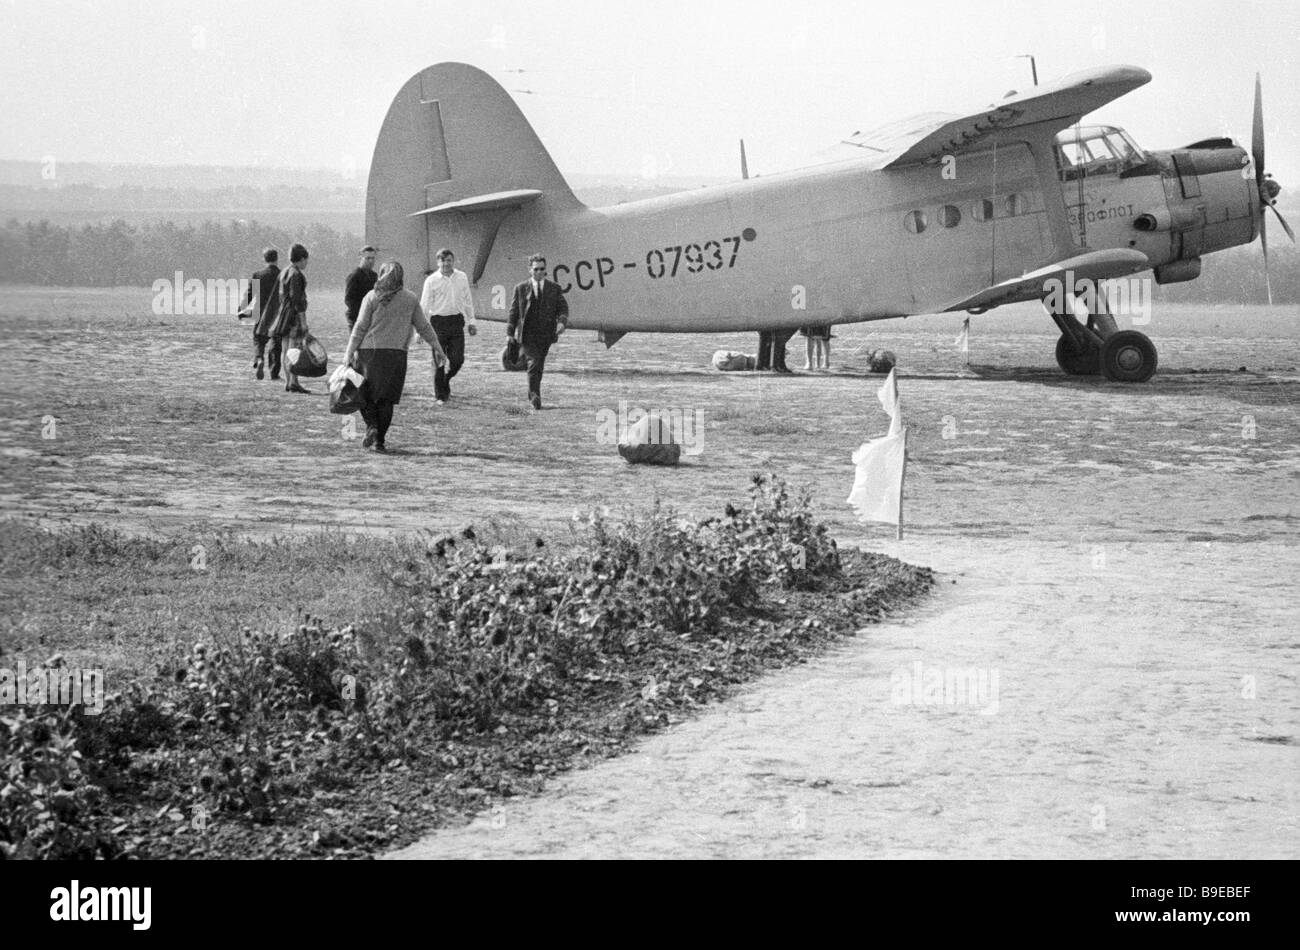 Passengers boarding the plane bound for Tatarbunary - Stock Image